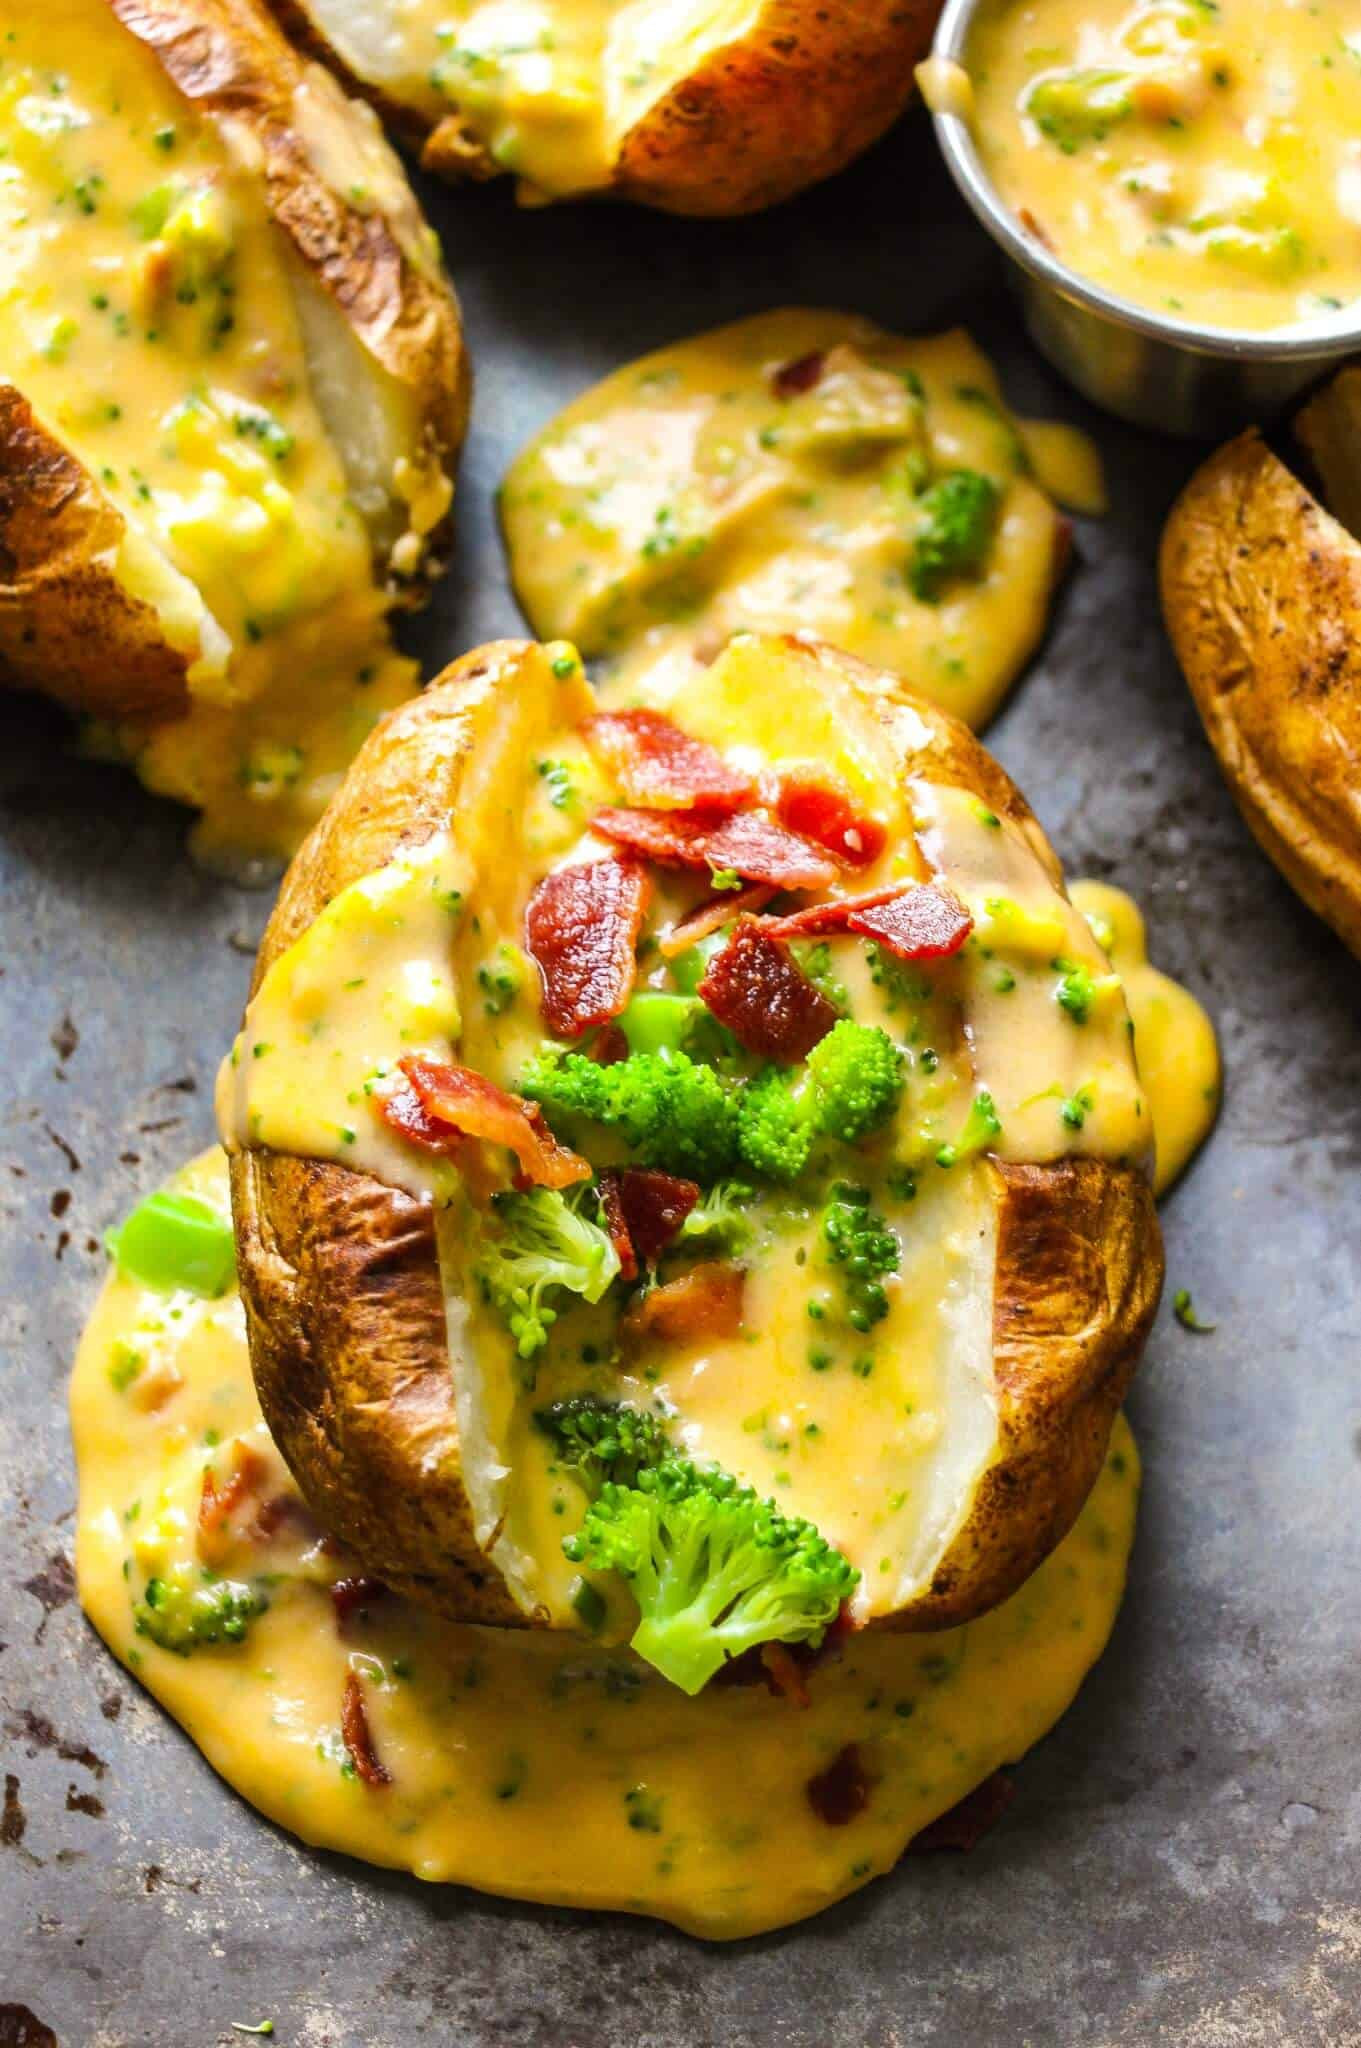 Baked Potato With Cheese  Baked Potatoes with Loaded Broccoli Bacon Cheese Sauce